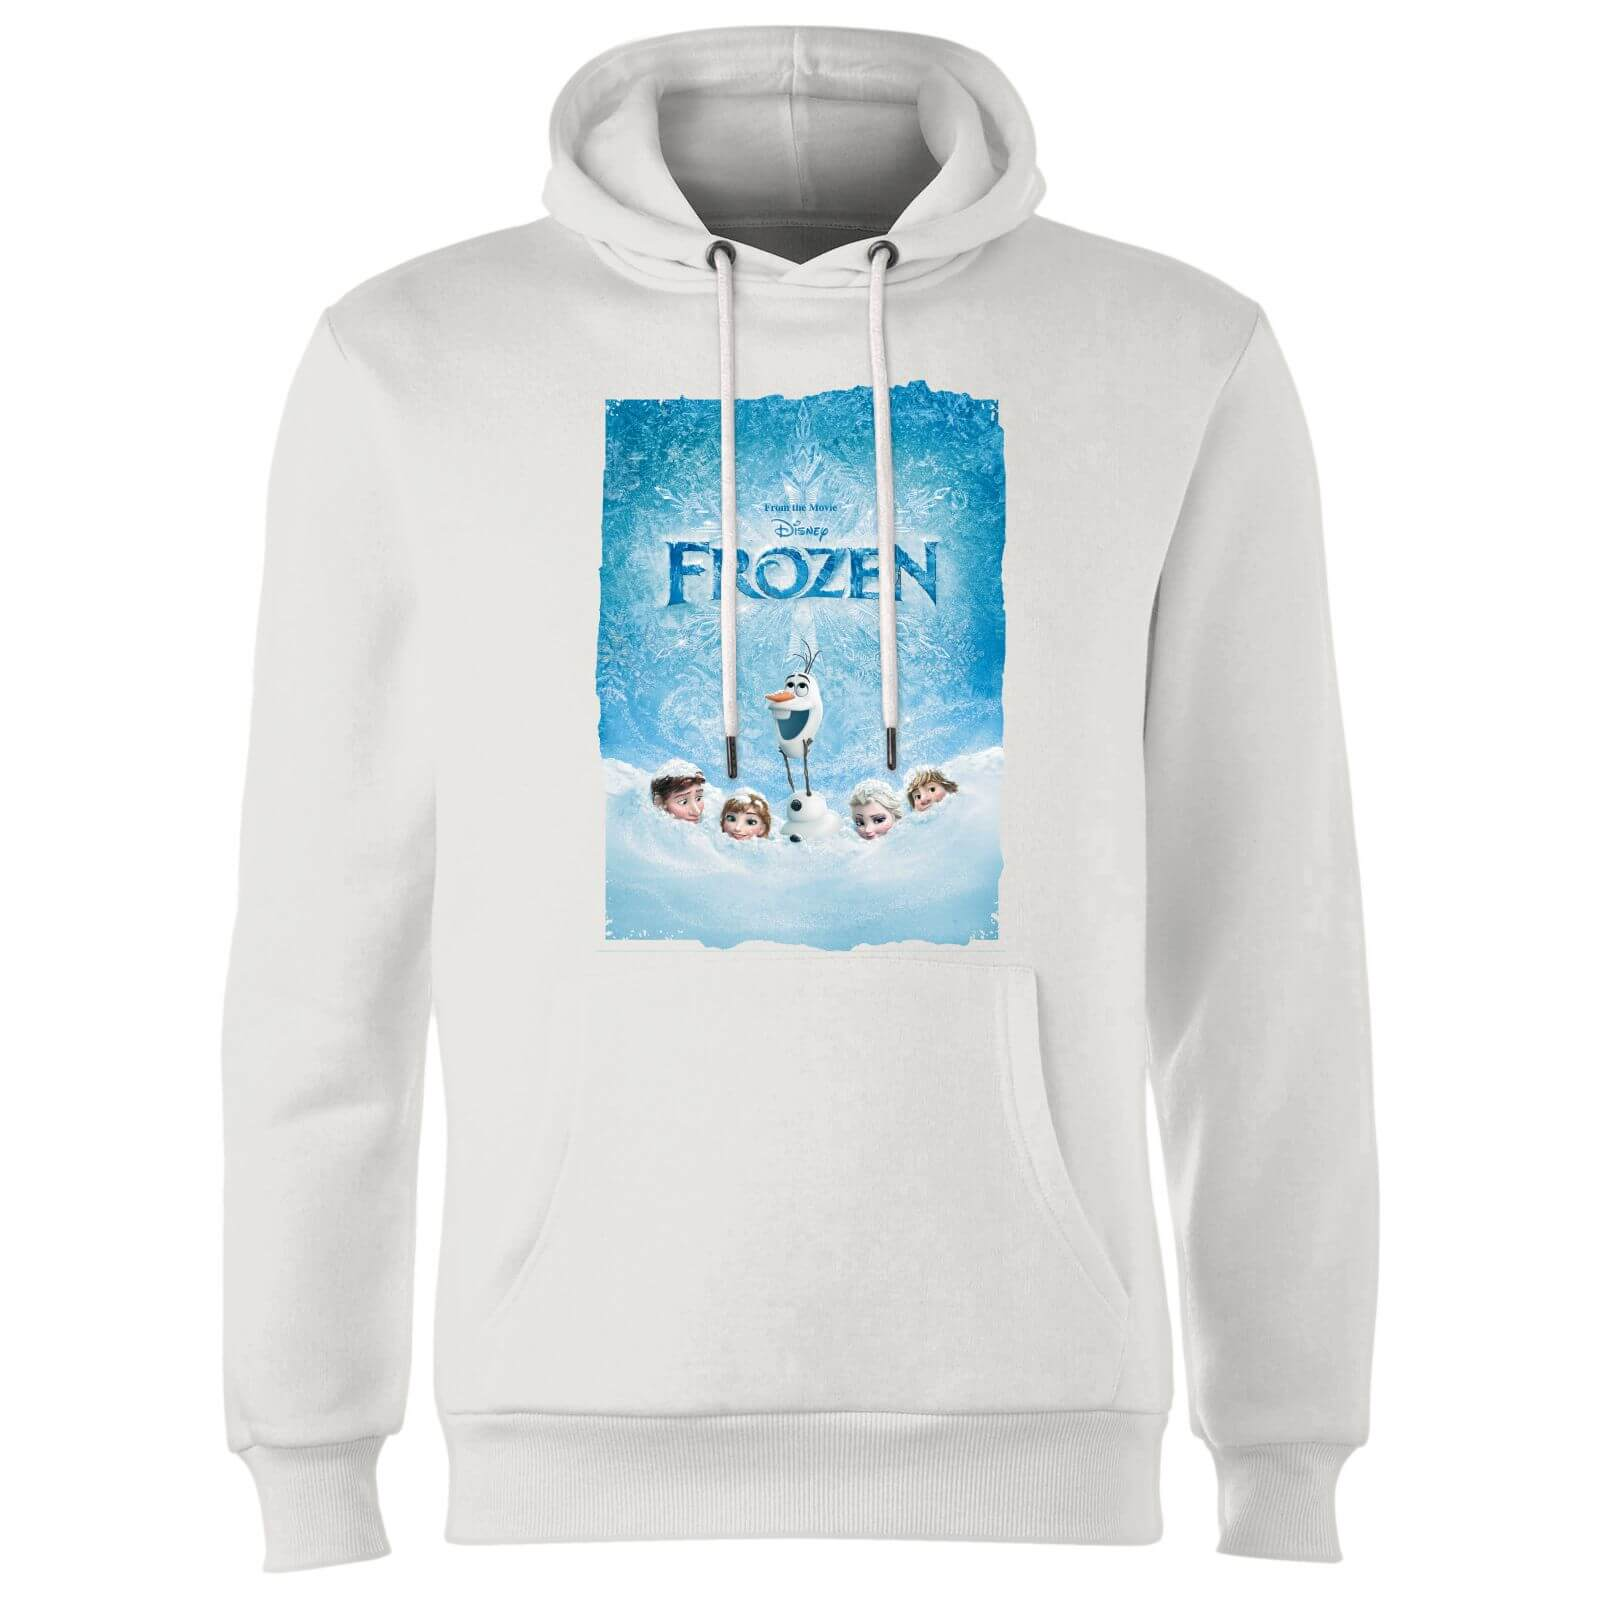 Frozen Snow Poster Hoodie - White